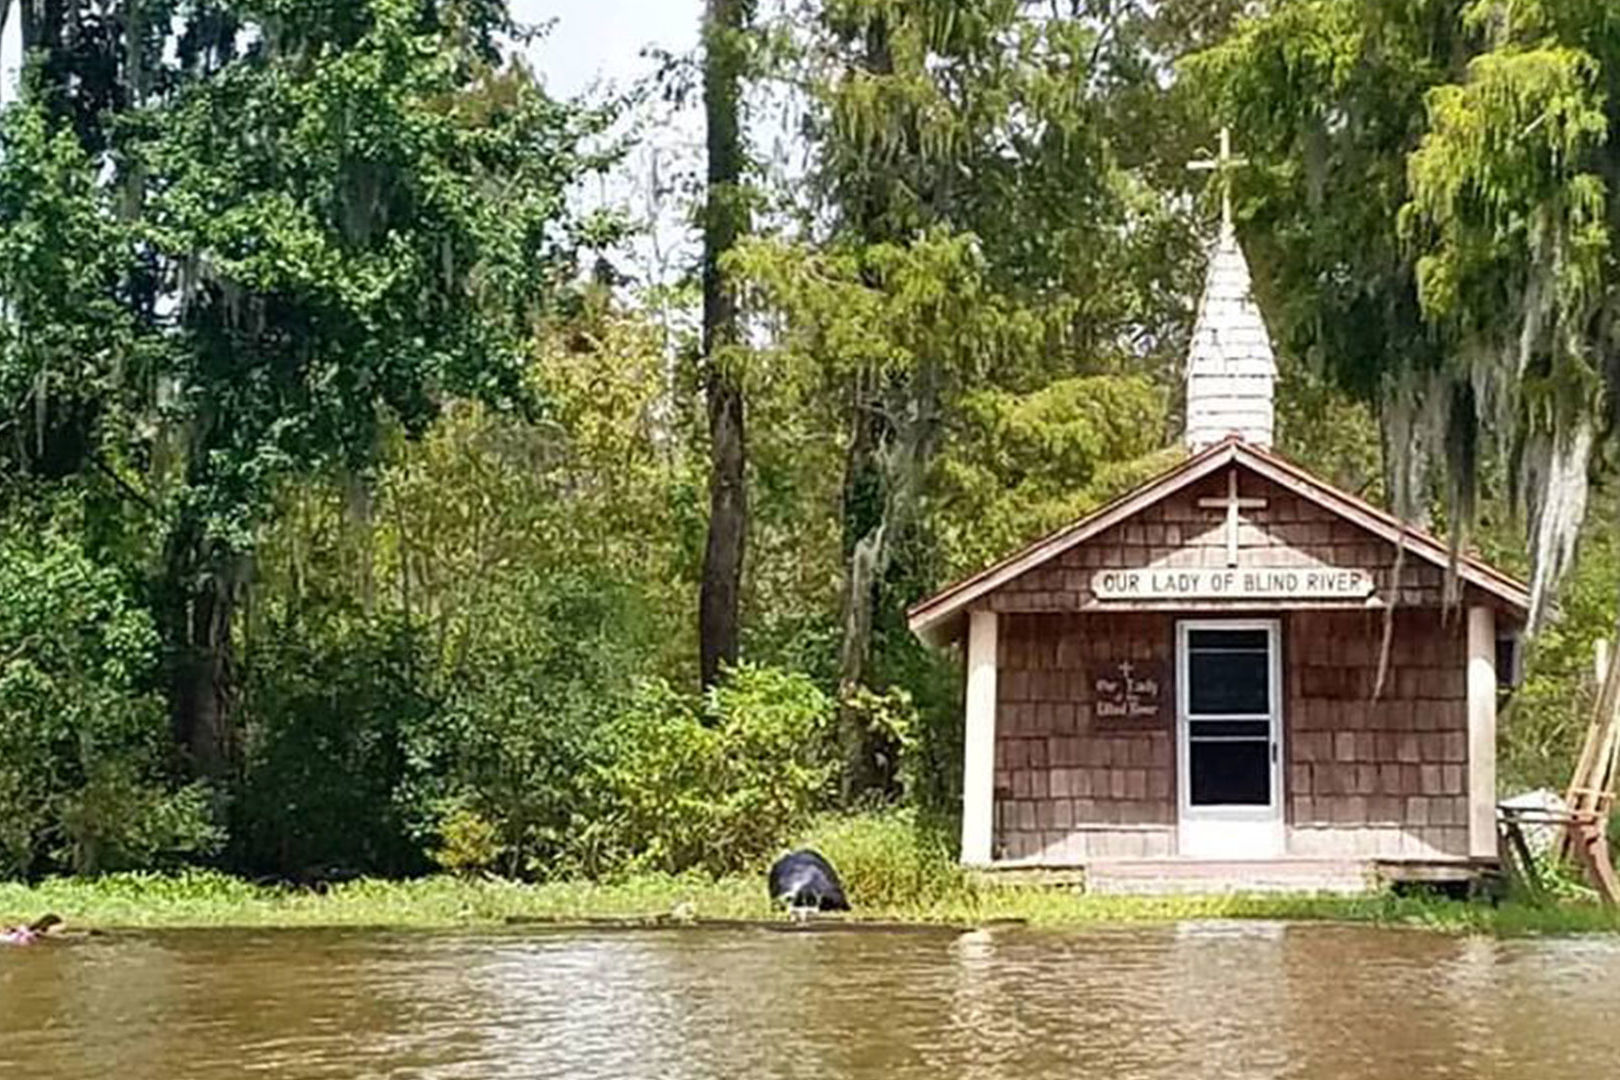 WATCH: A Family's Quest to Save the Little Louisiana Chapel You Can Only Reach by Boat